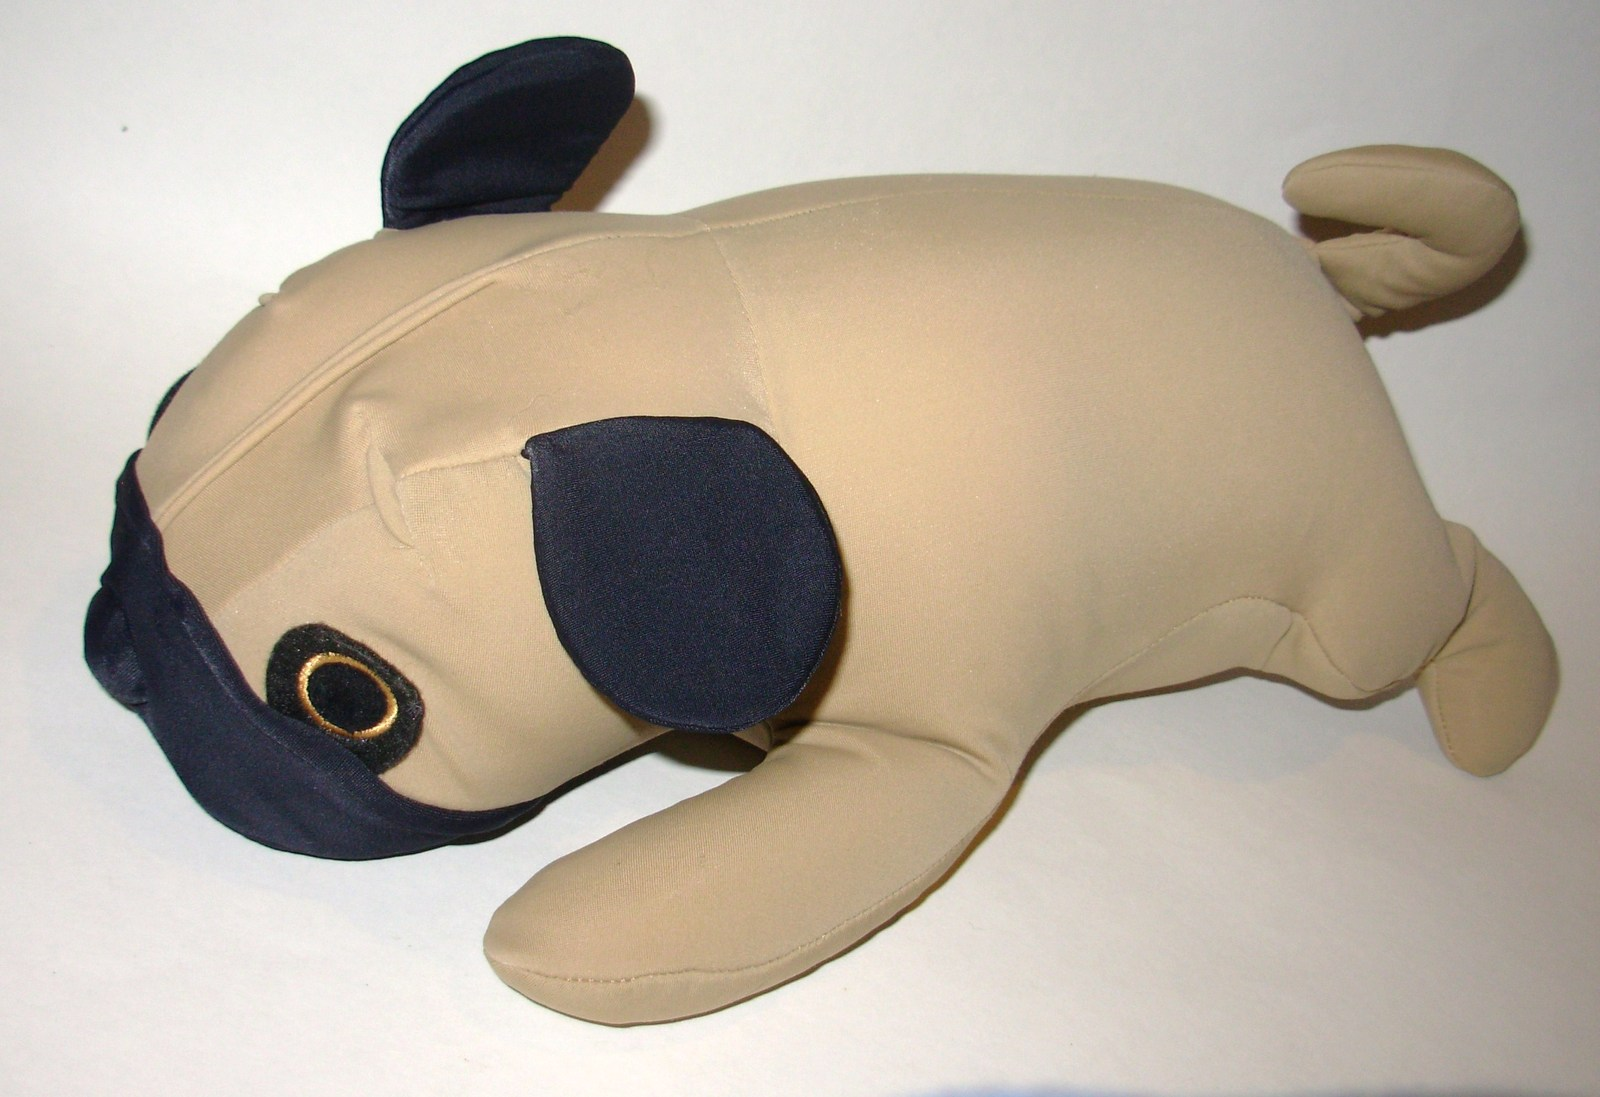 Mogu Dog Pug Puppy Plush Microbead Pillow Stuffed Animal Tan Brown